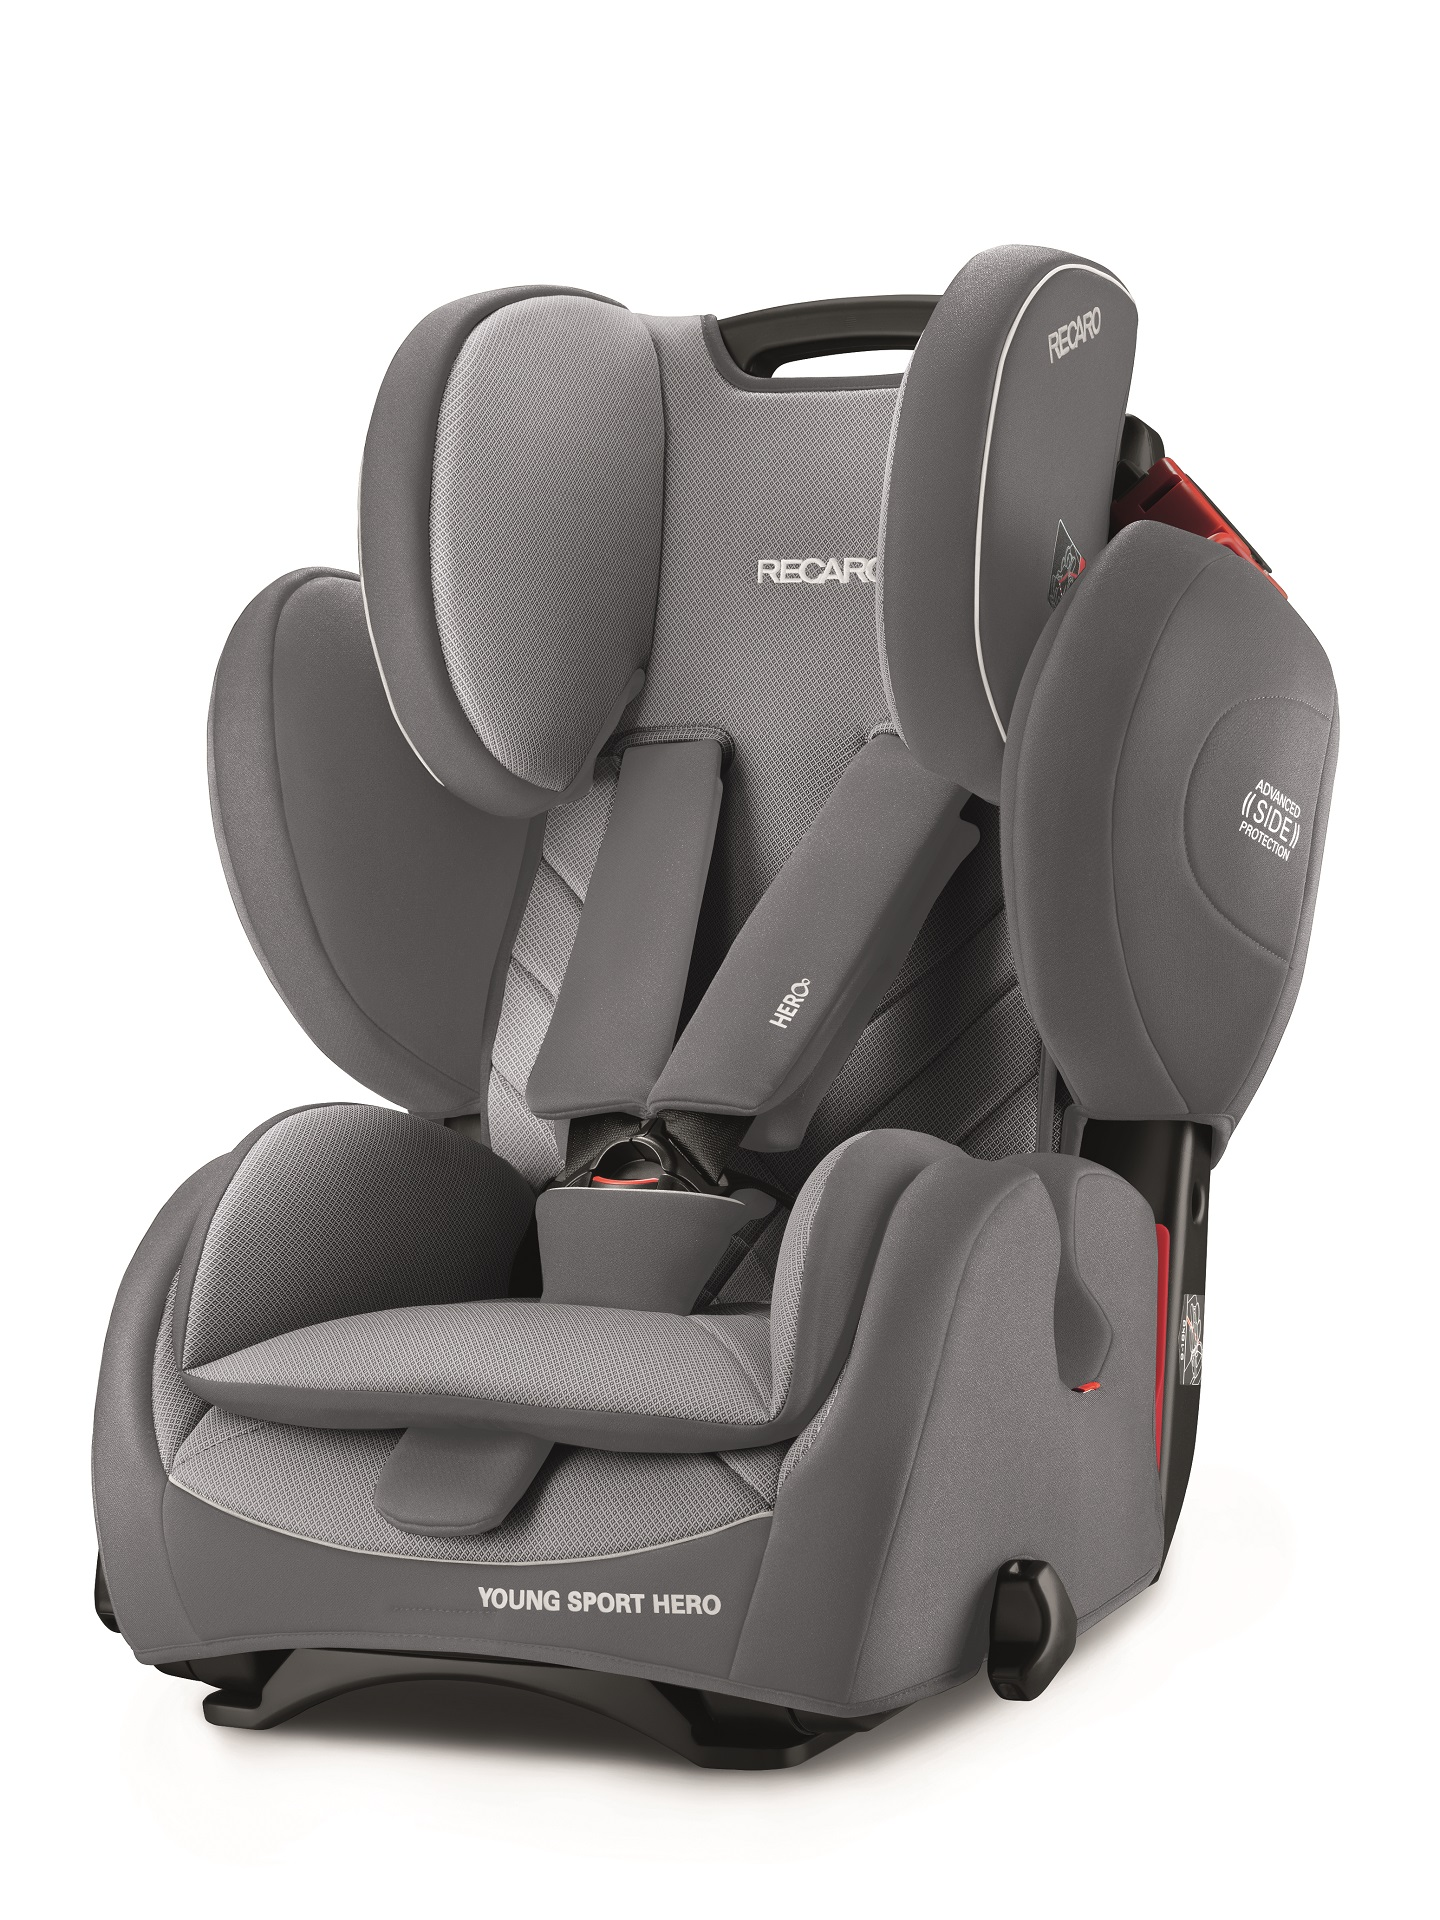 Recaro Child Car Seat Young Sport Hero Aluminium Grey 2018